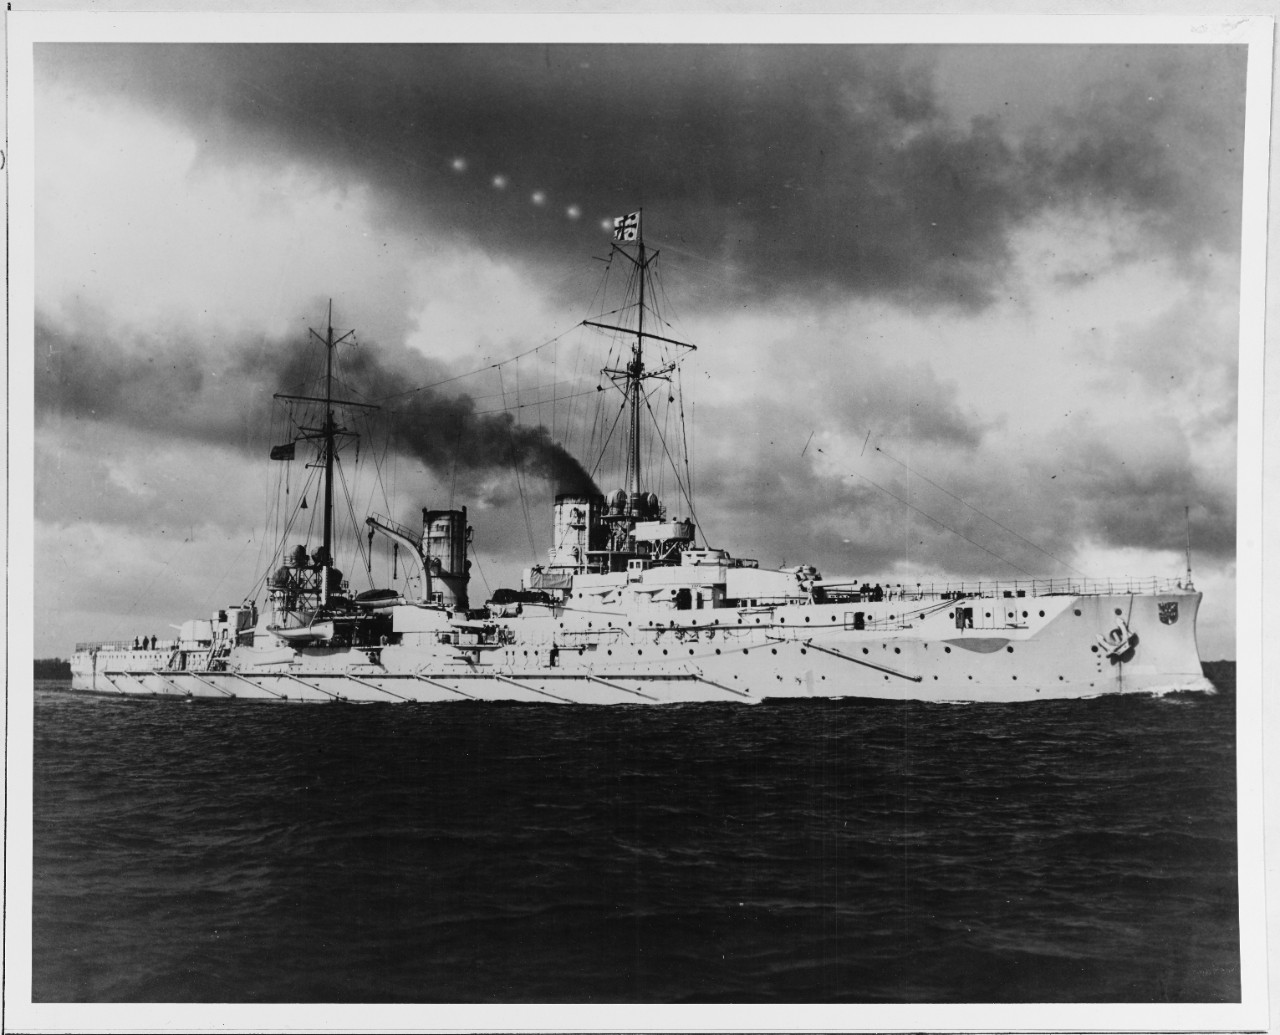 SMS BLUCHER (German armored cruiser, 1908)